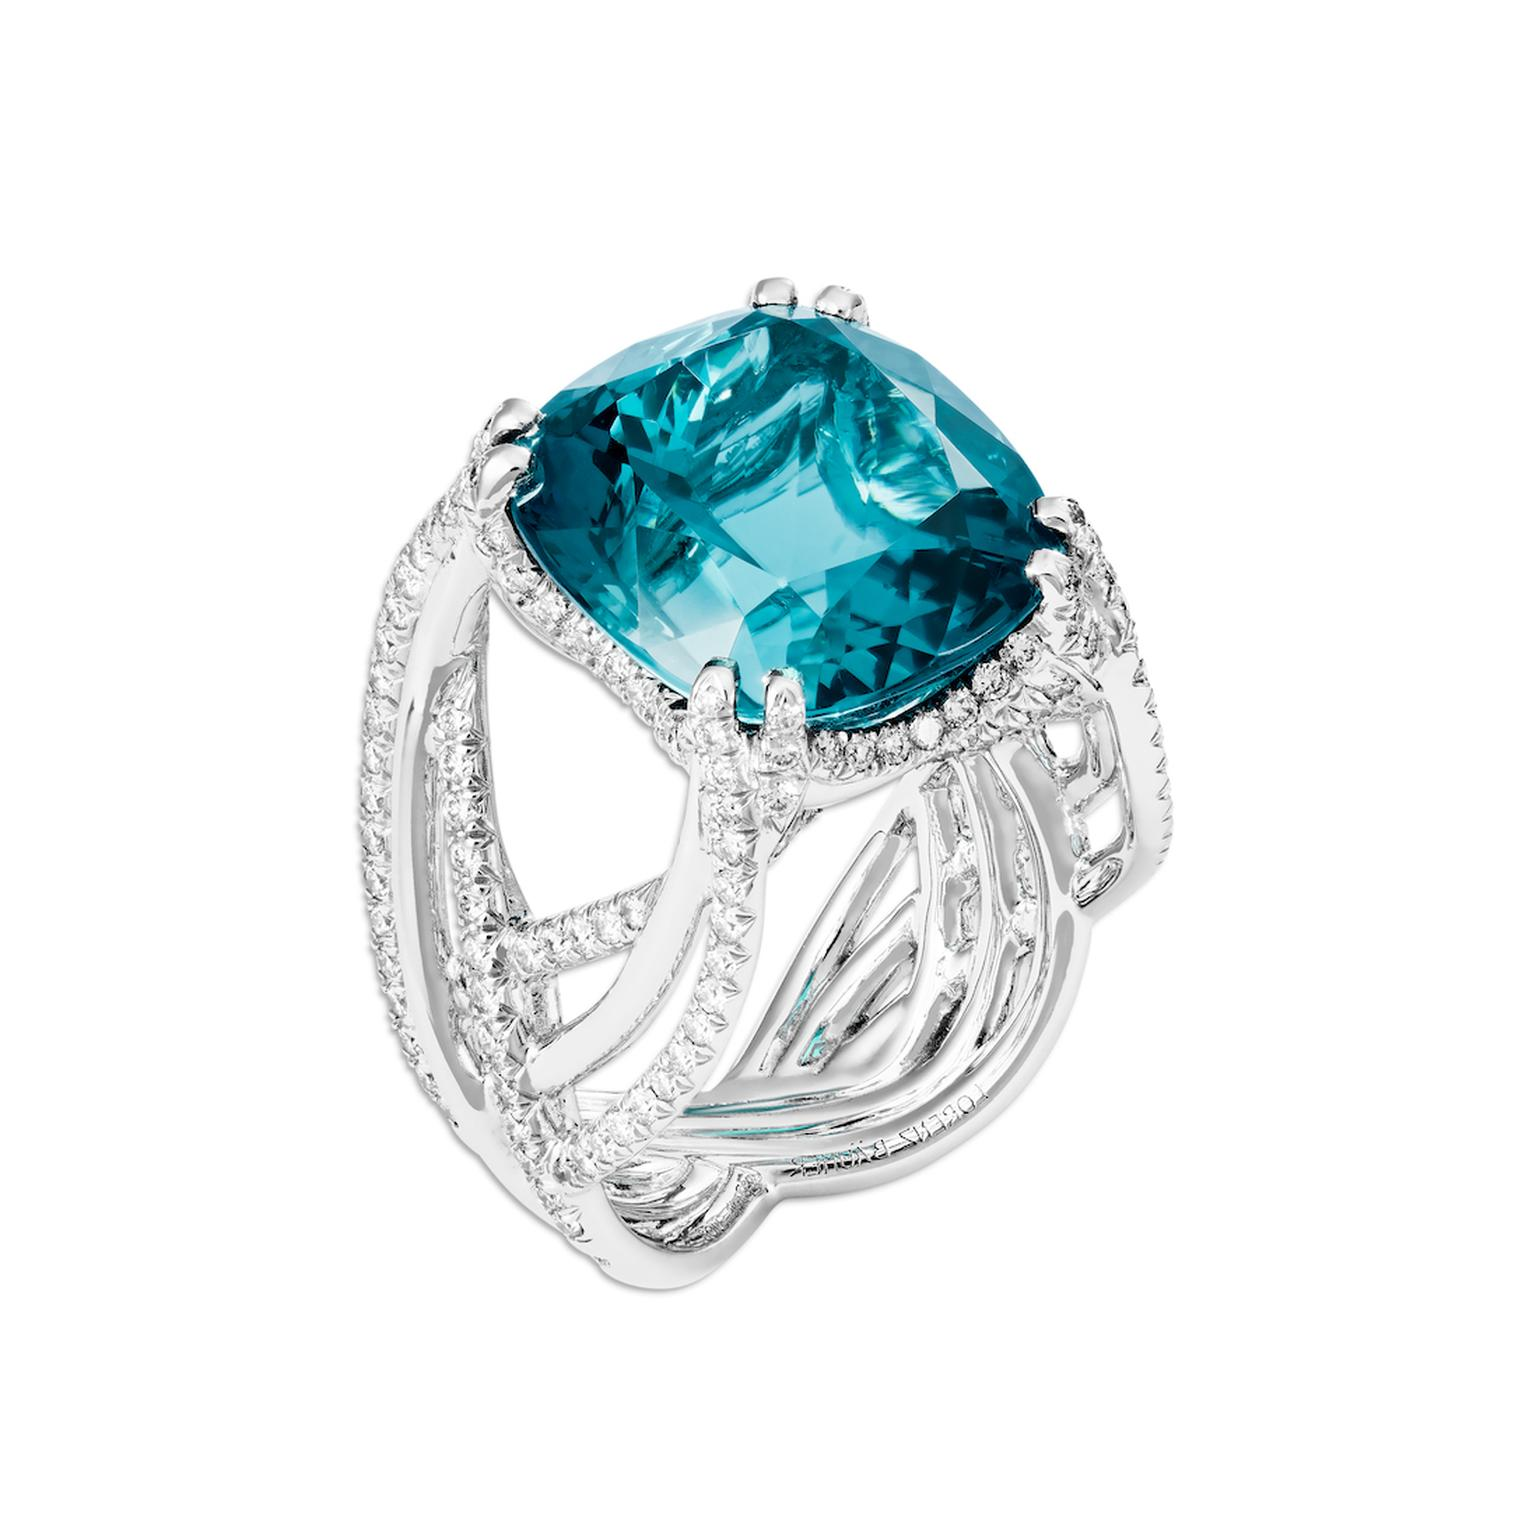 Lorenz Baumer Oasis blue tourmaline ring with diamonds